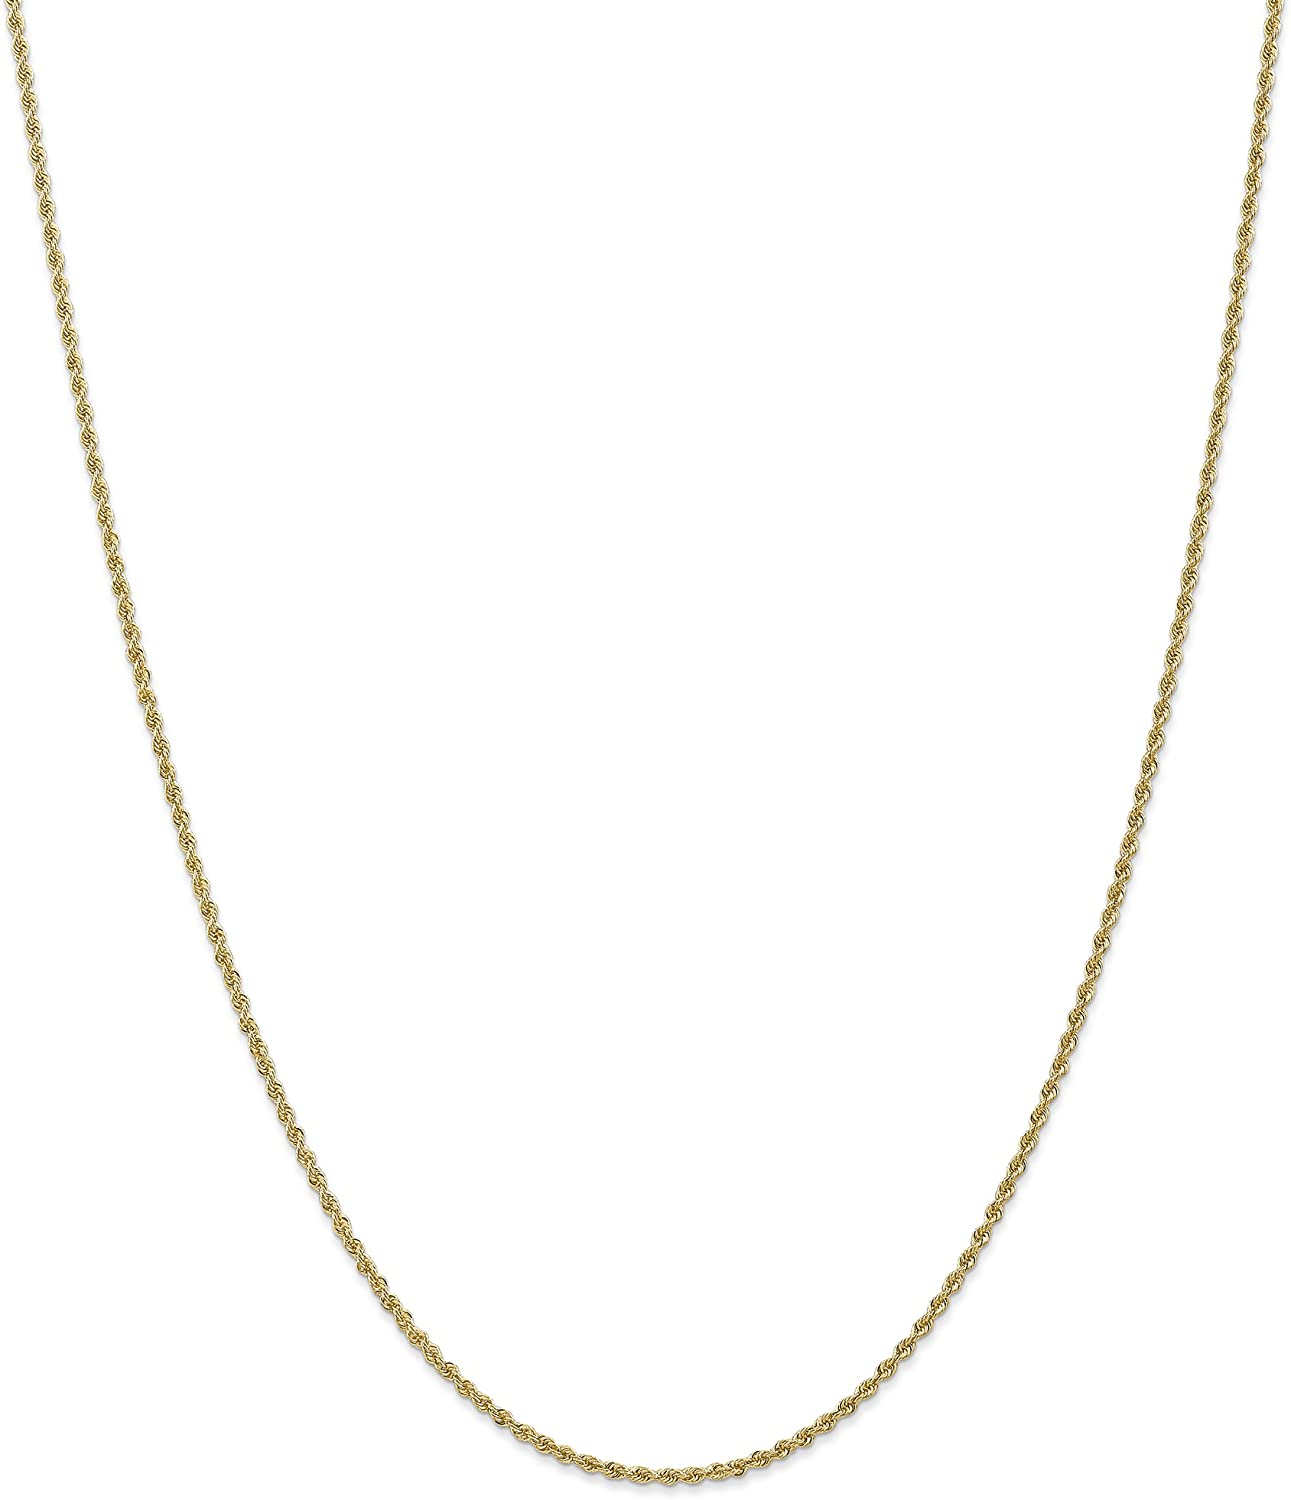 CoutureJewlers 14k 1.50mm D//C Rope with Lobster Clasp Chain 6 INCH